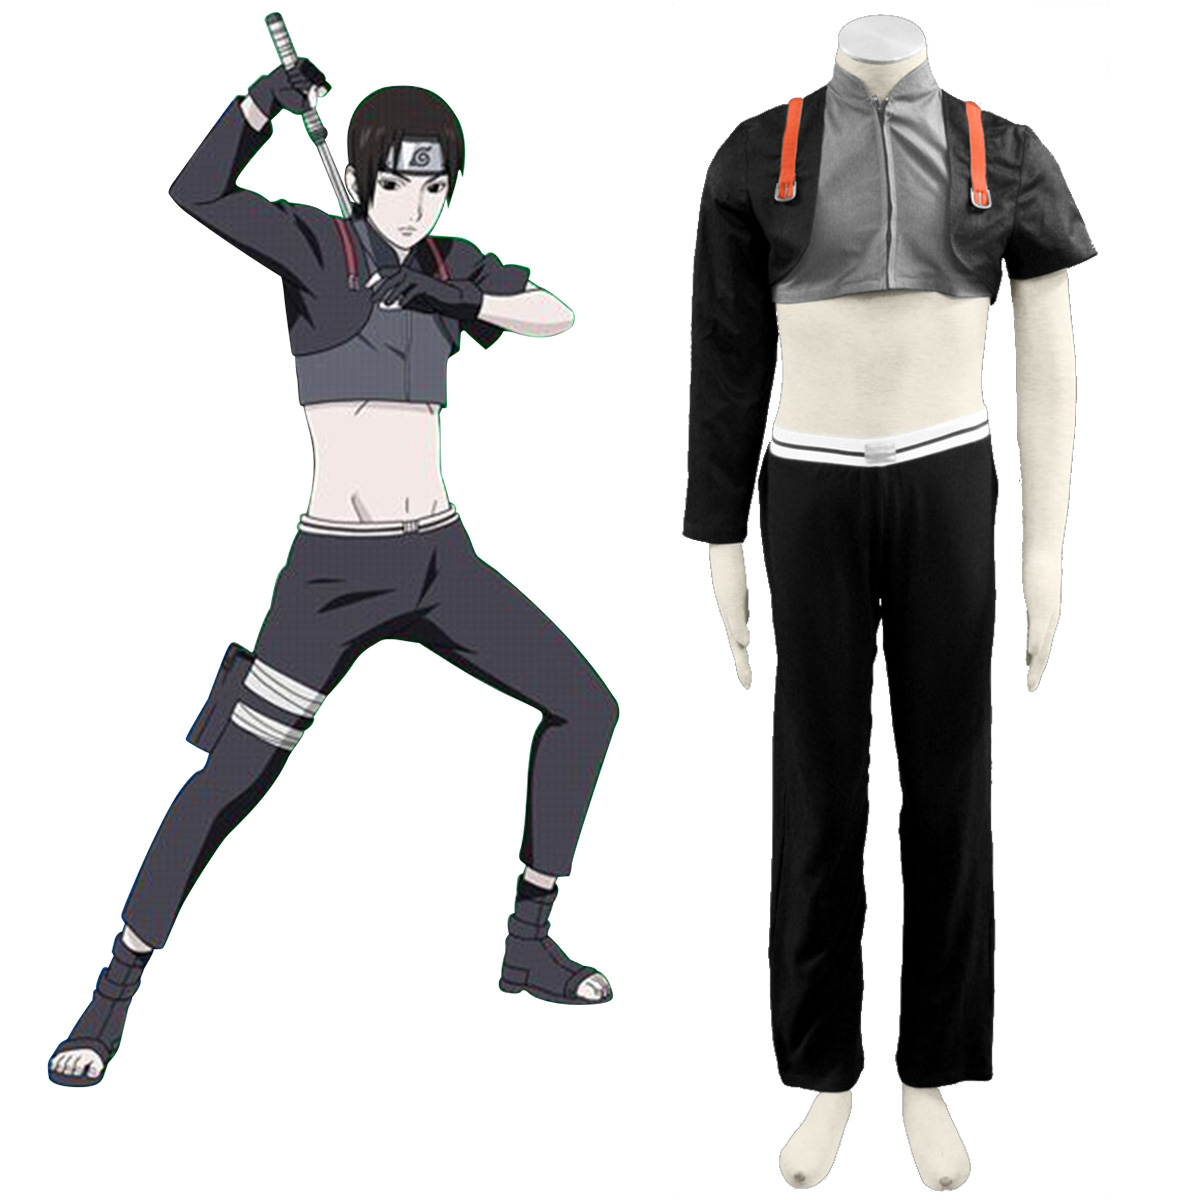 Naruto Shippuden Sai Anime Cosplay Costumes Outfit